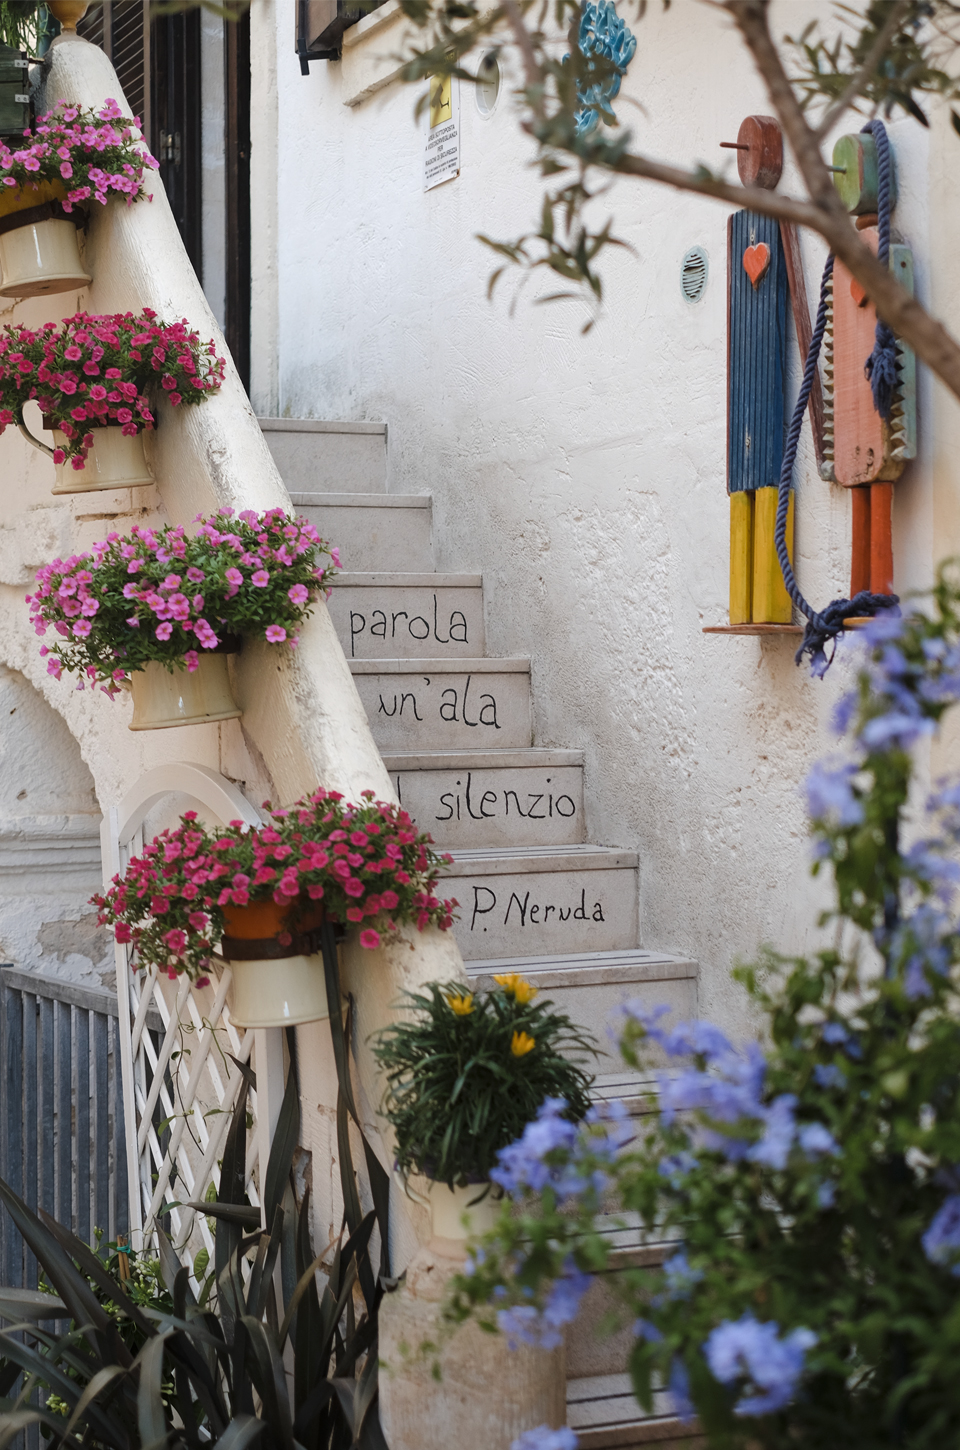 A glimpse of Puglia, stairway with written words and plants in Polignano